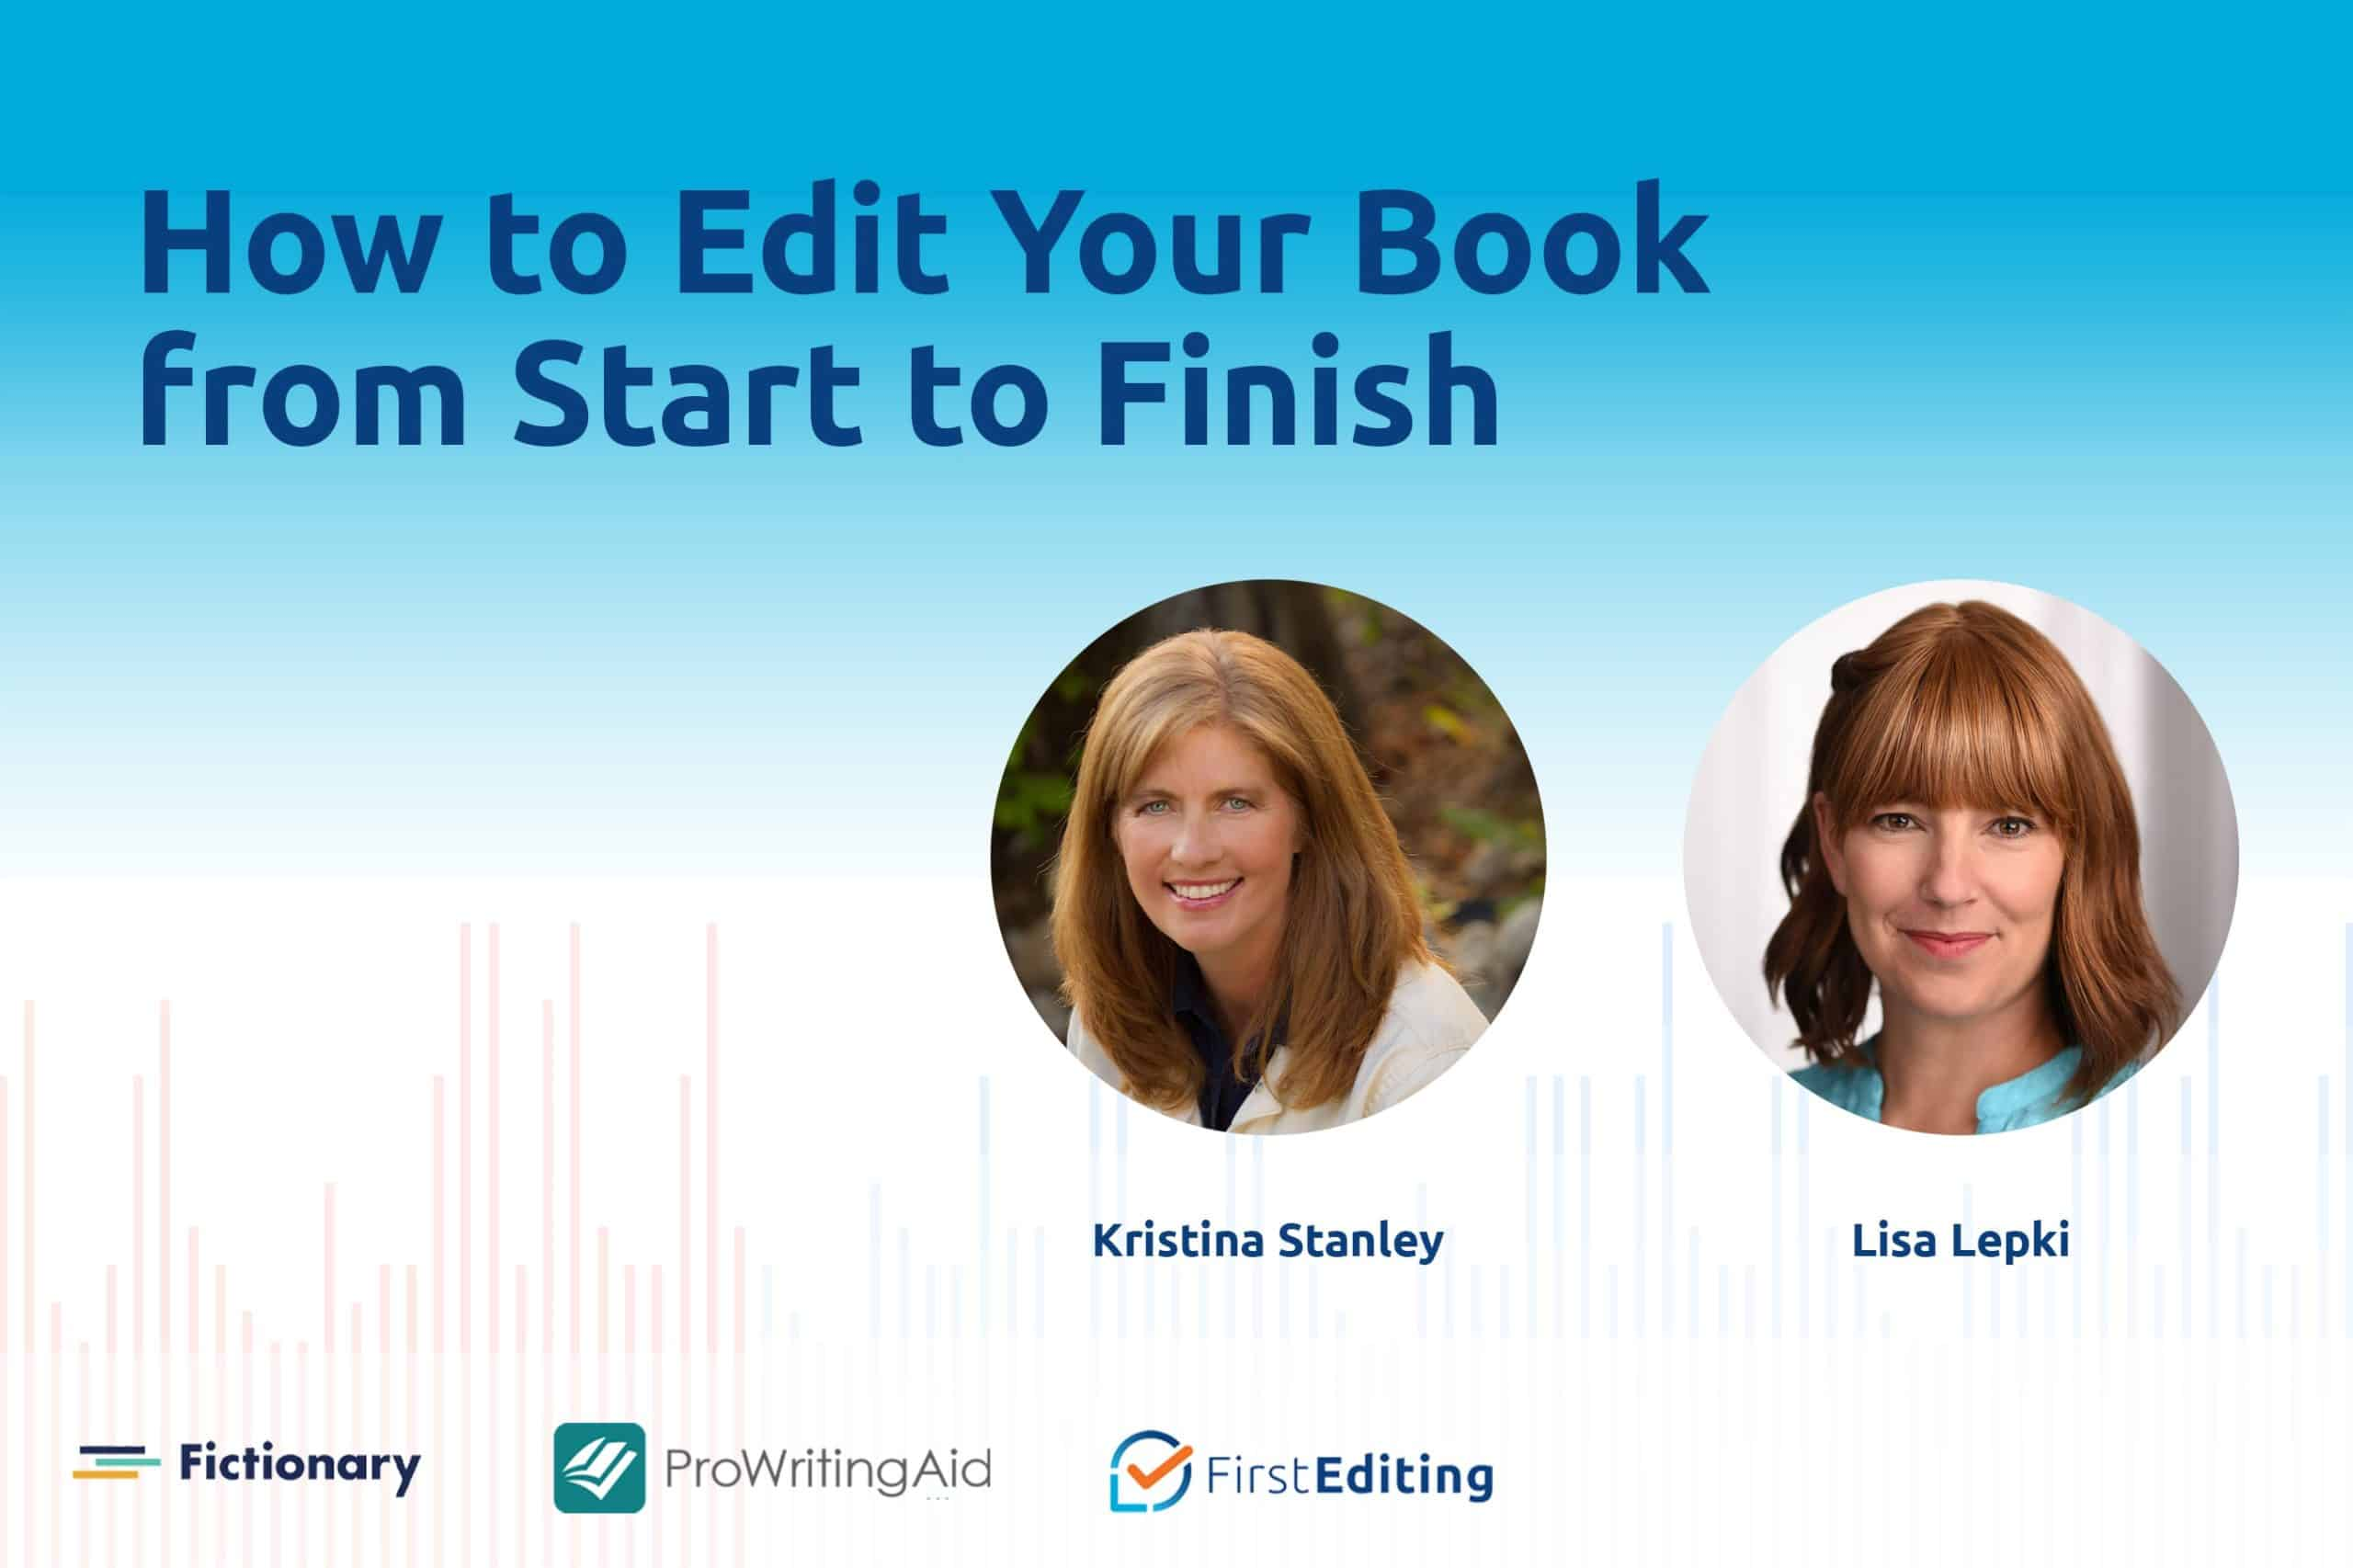 How to Edit Your Book from Start to Finish